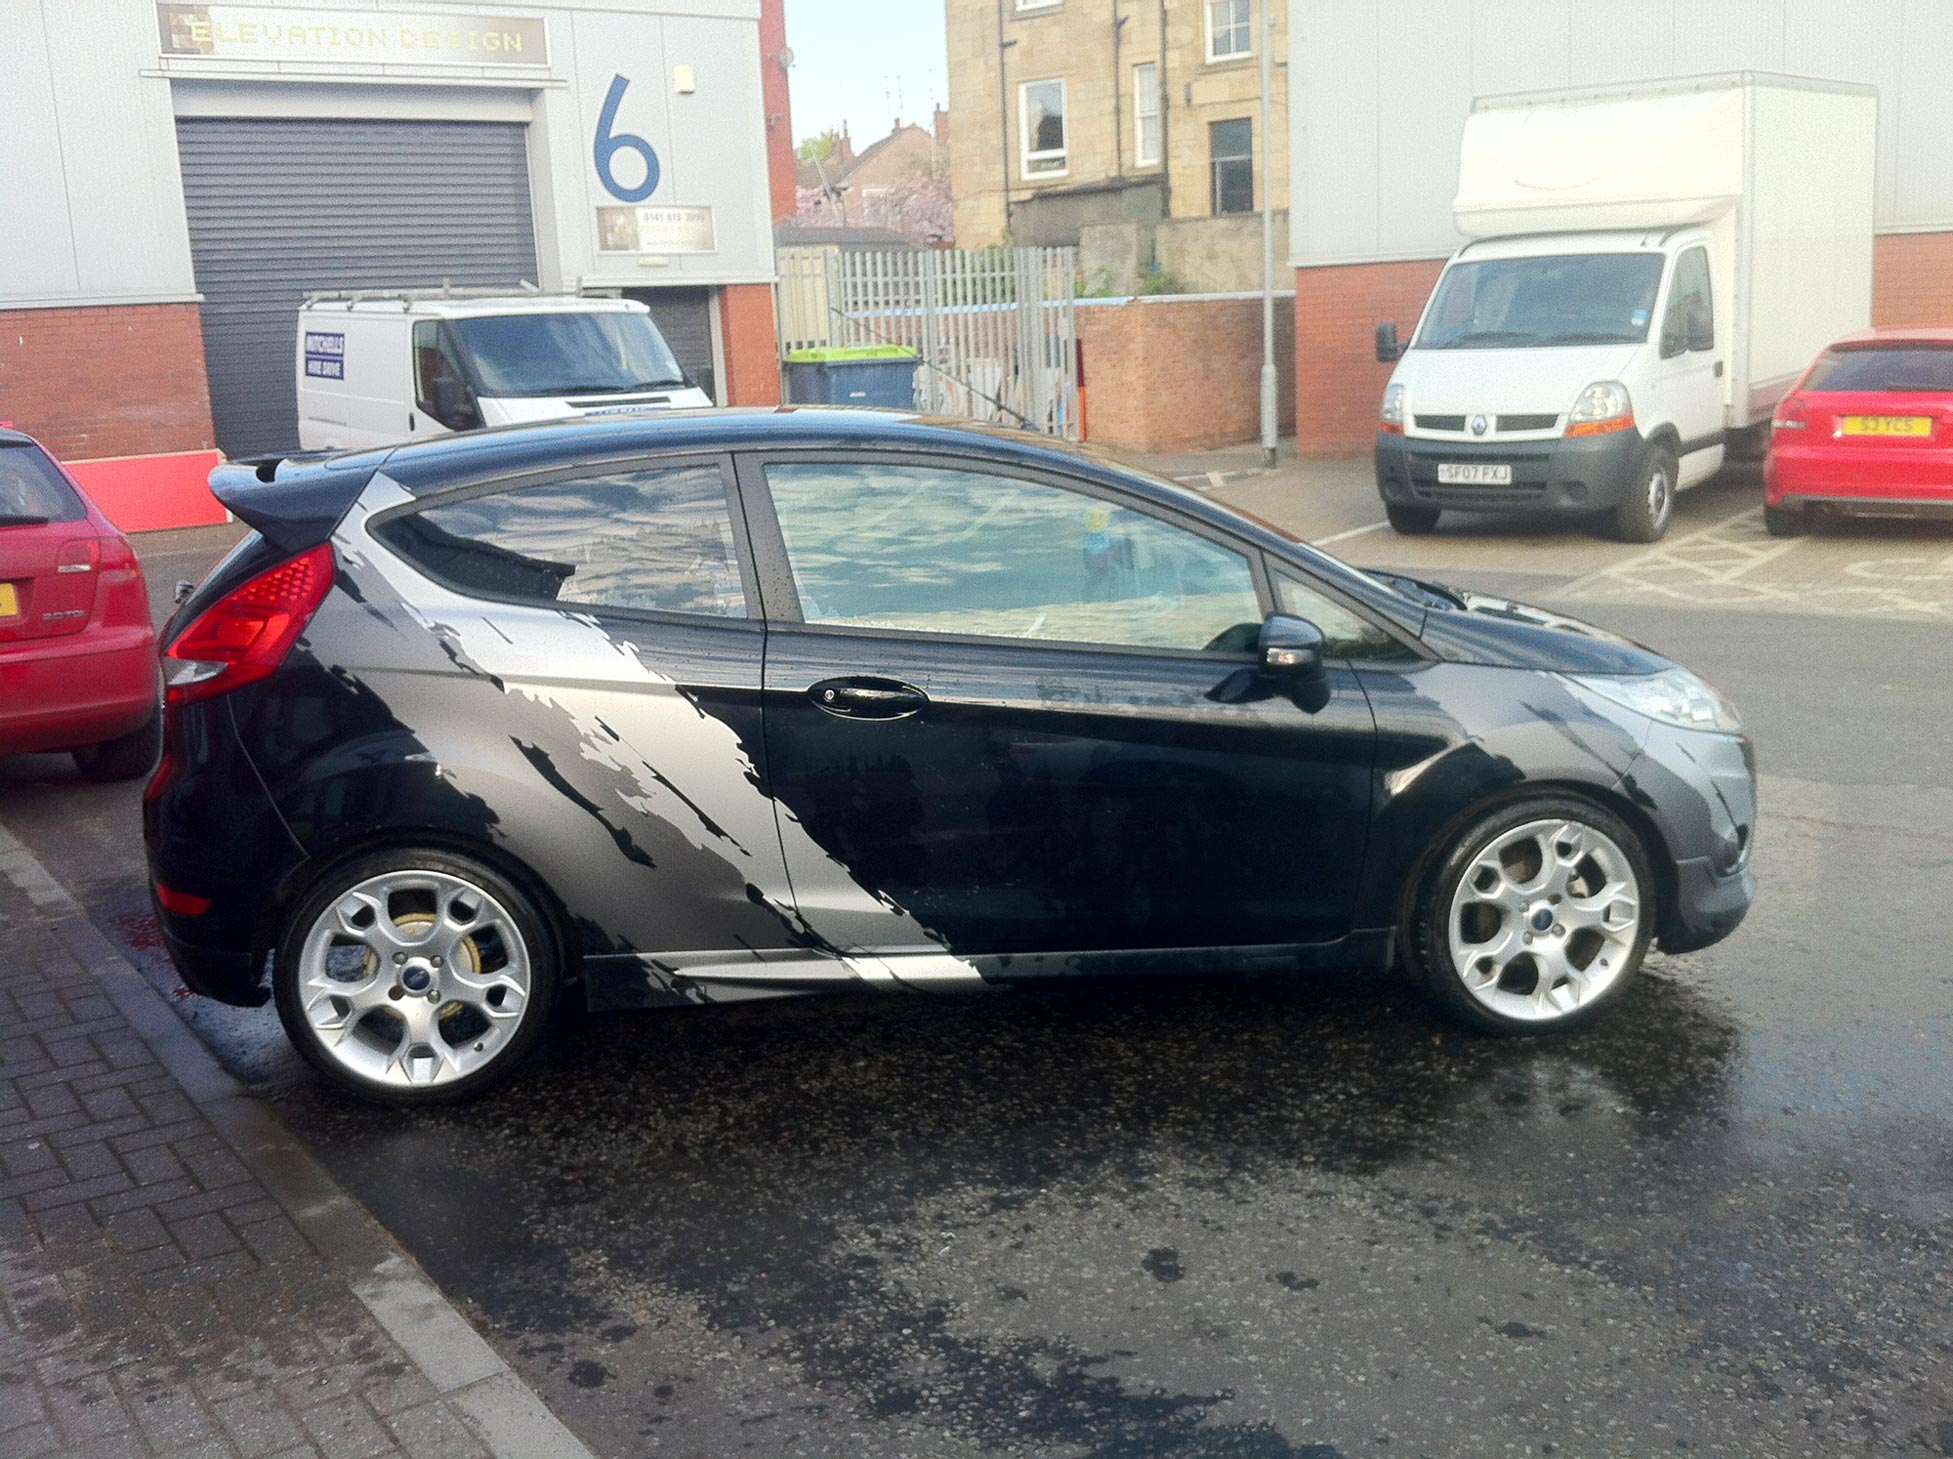 Ford Fiesta ST Custom 'torn' Graphics In Matte Metallic Grey And Silver